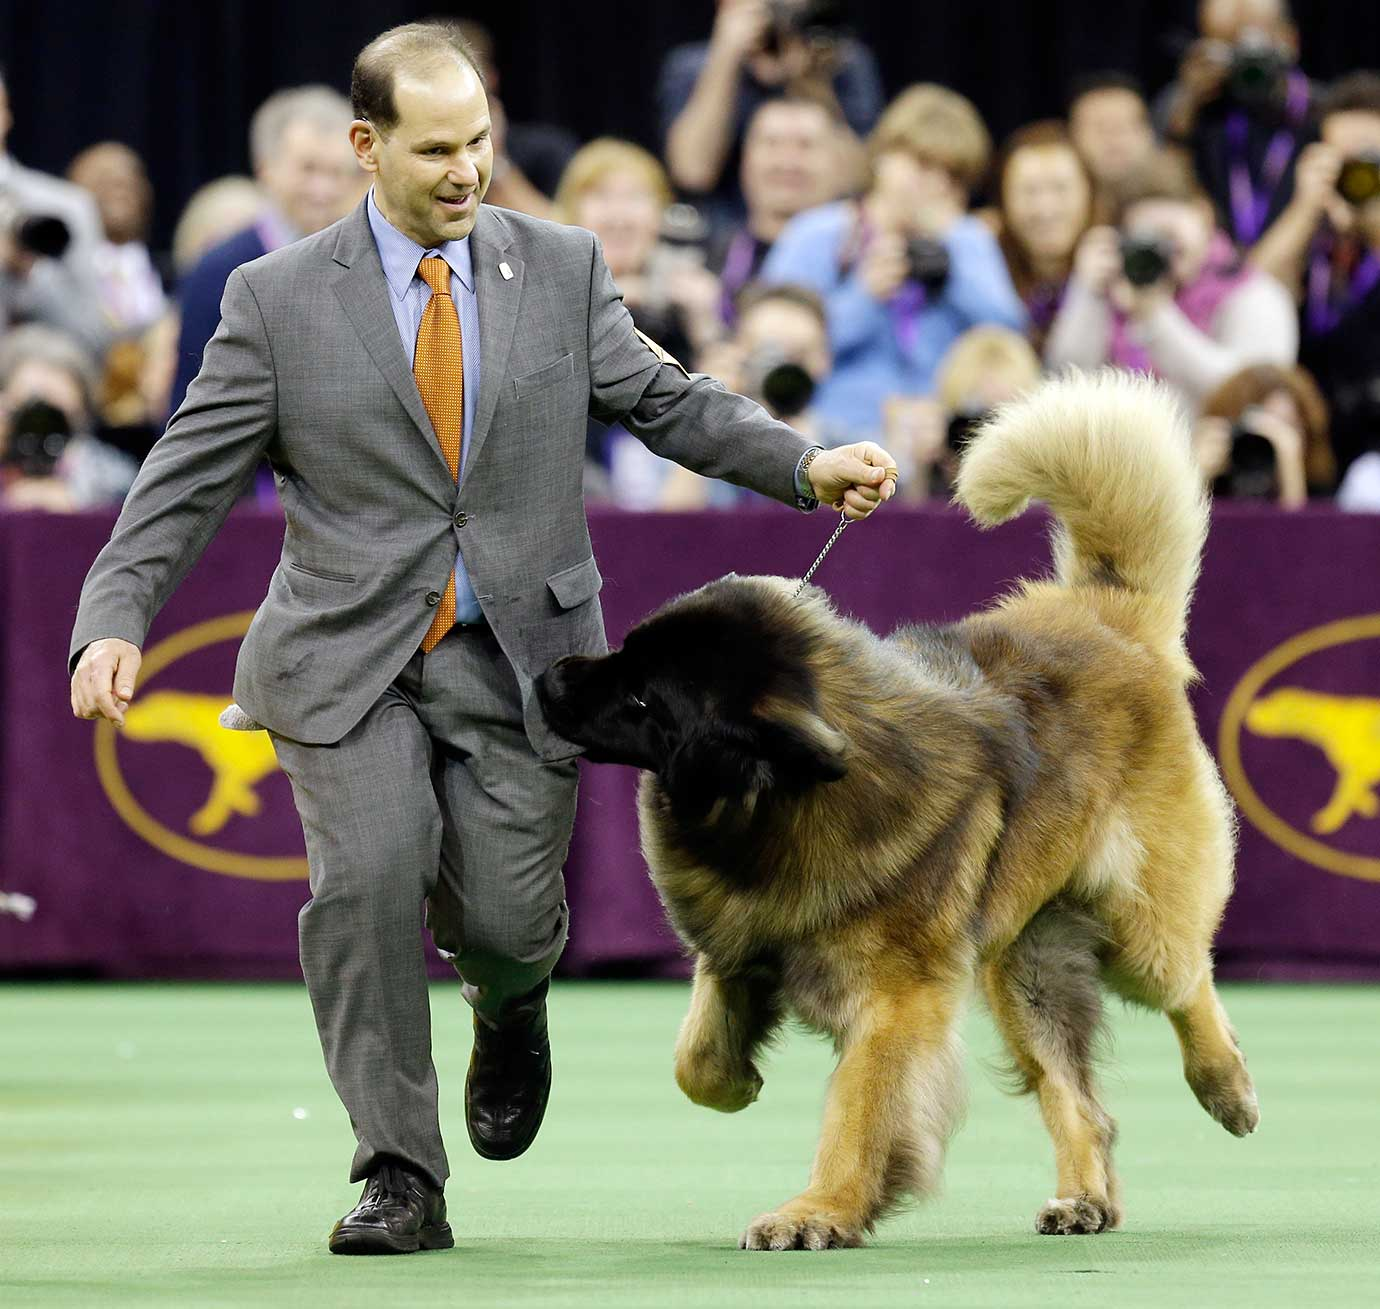 Dario, a Leonberger, tries to get at the treats in Sam Mammano's pocket during the working group competition.